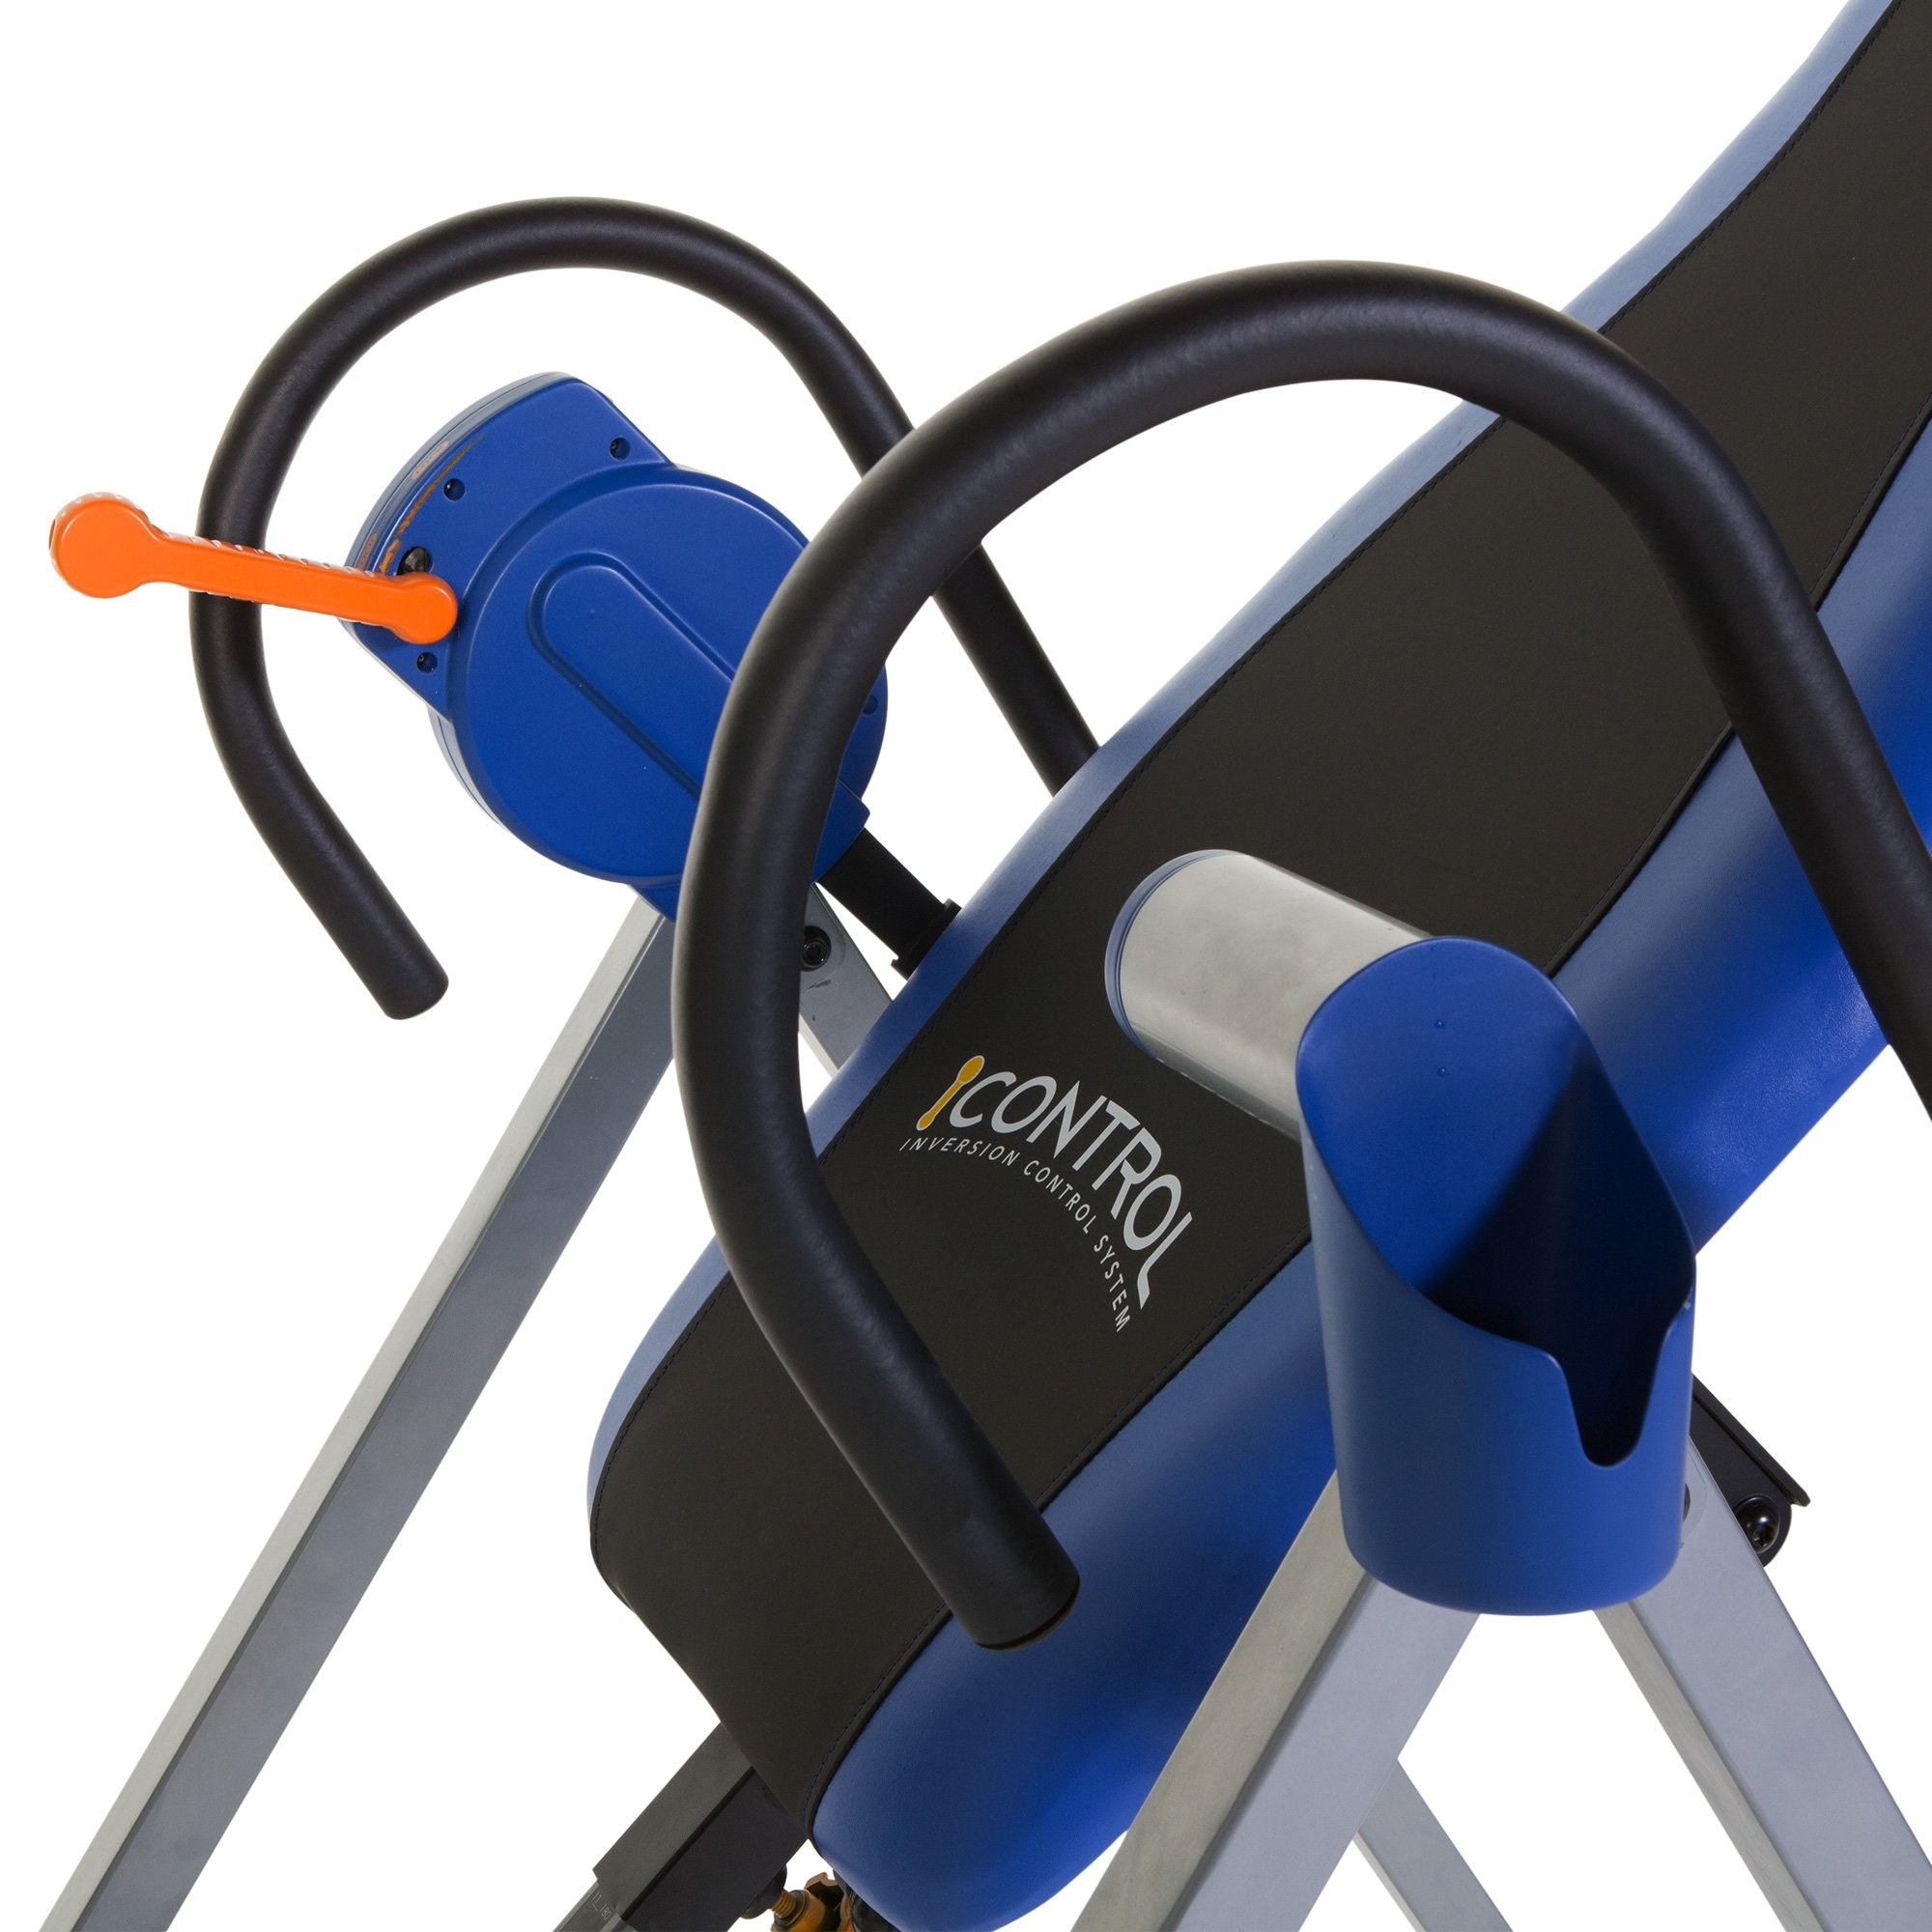 Ironman iControl 400 Disk Brake System Inversion Table by IRONMAN (Image #5)